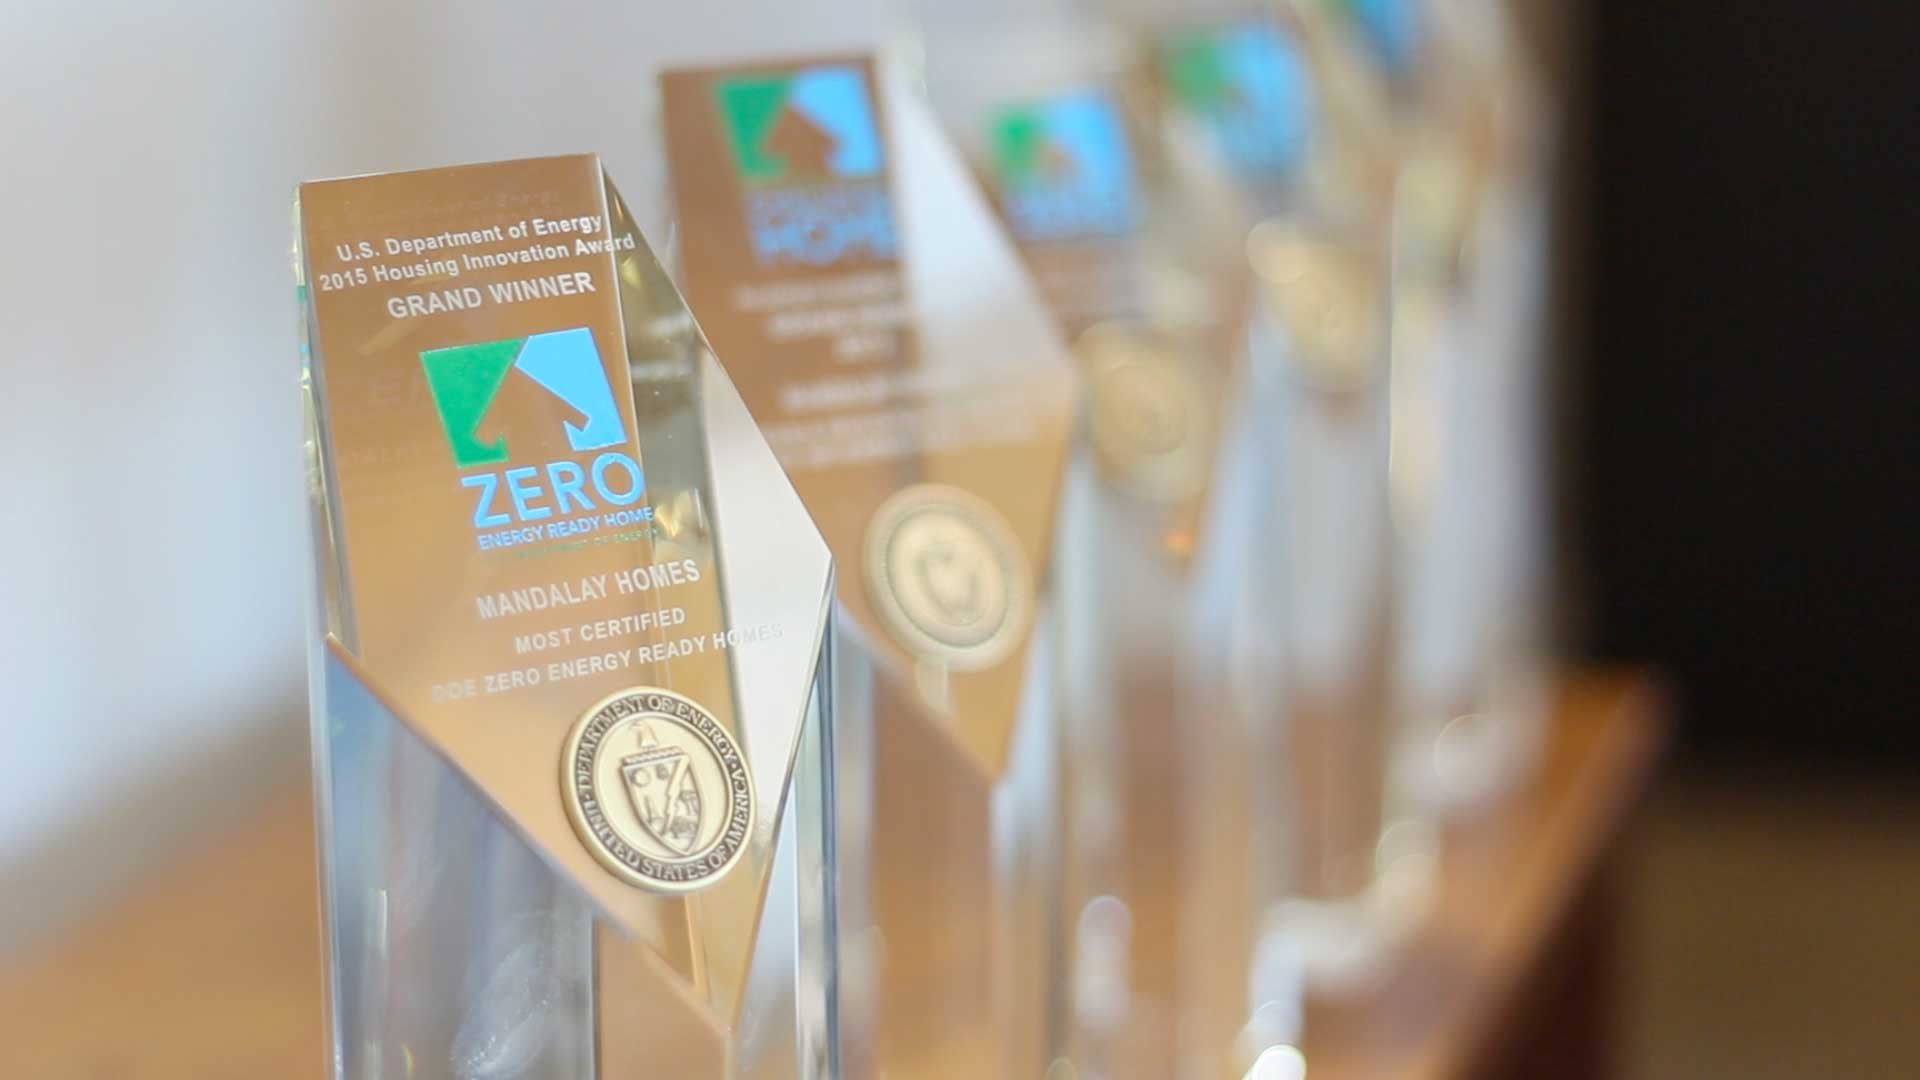 DOE Energy Awards